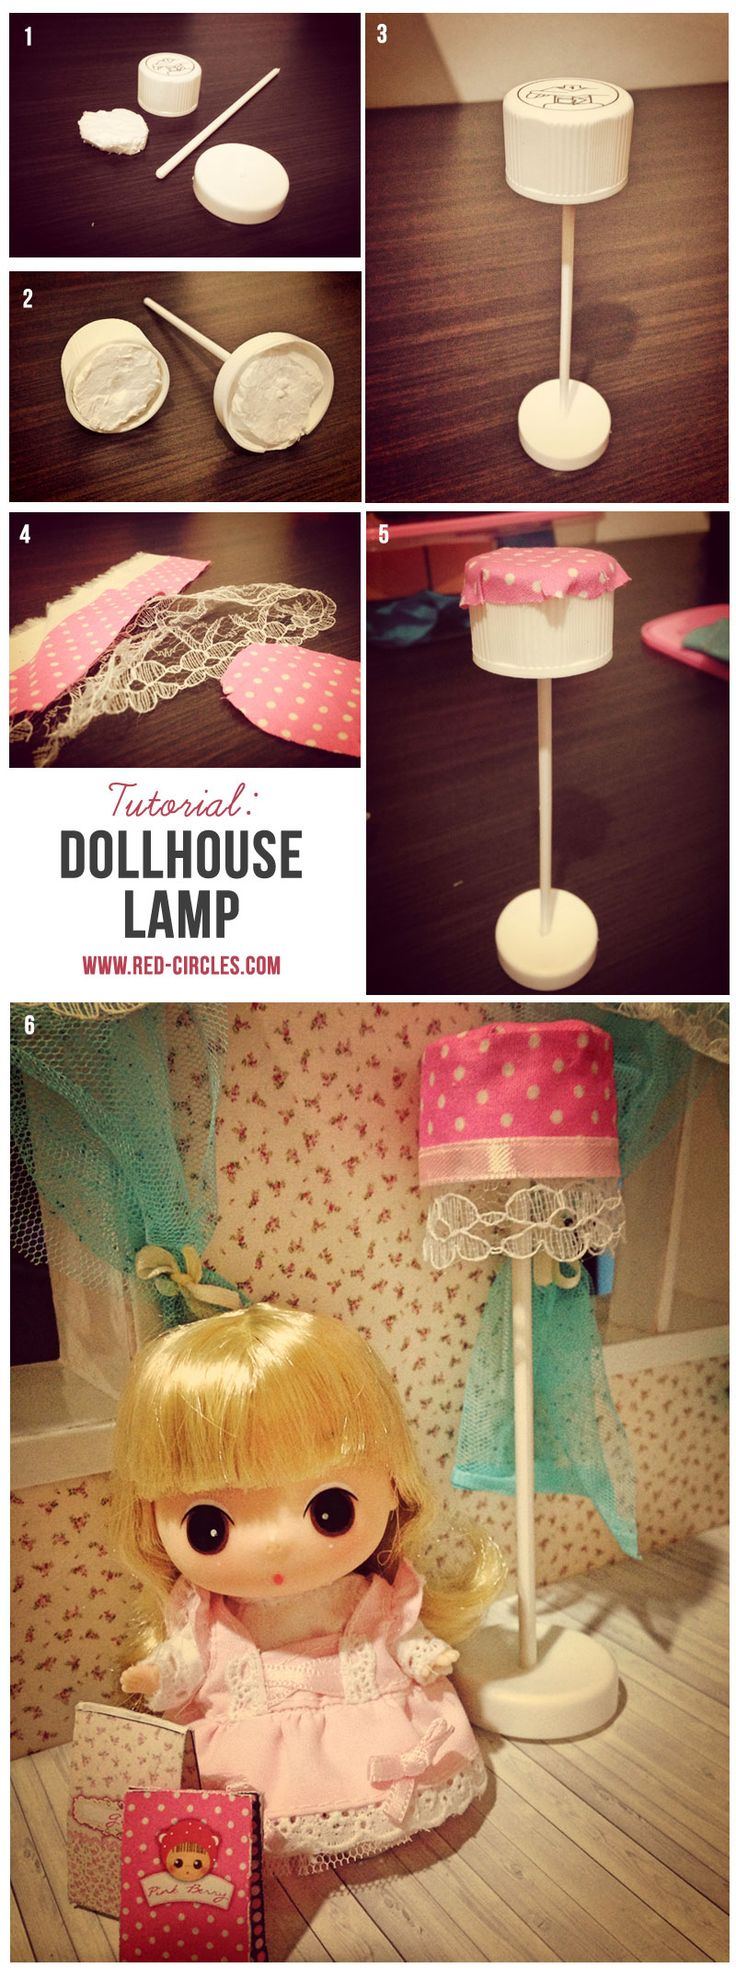 DIY Tutorial to make dollhouse lamp from trash stuff